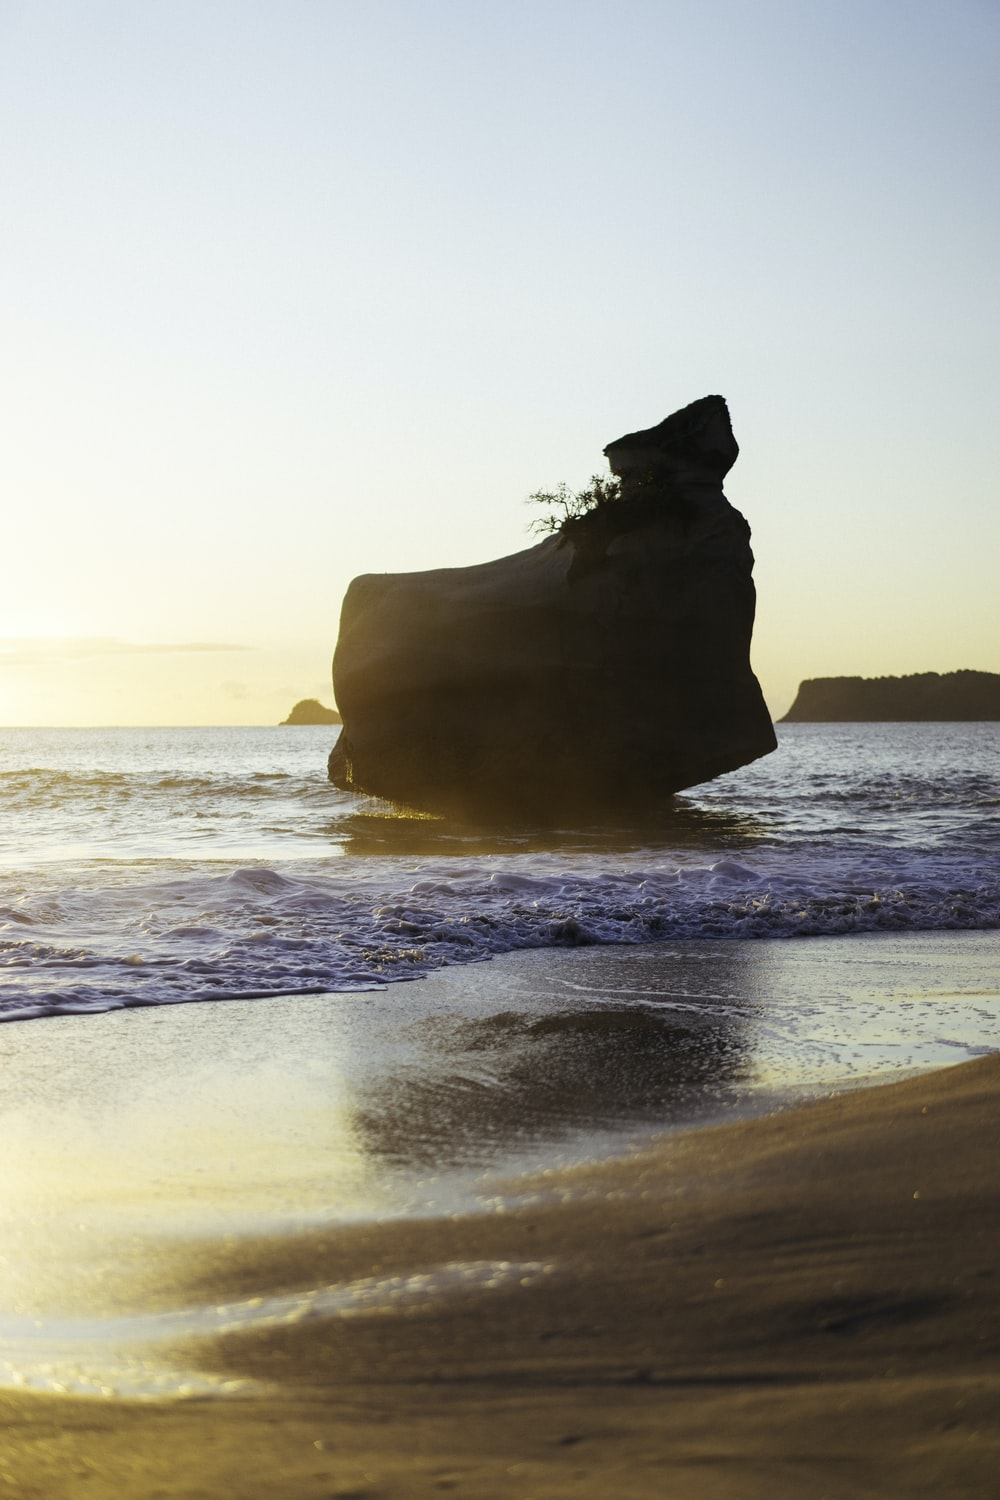 silhouette of rock formation on sea during daytime